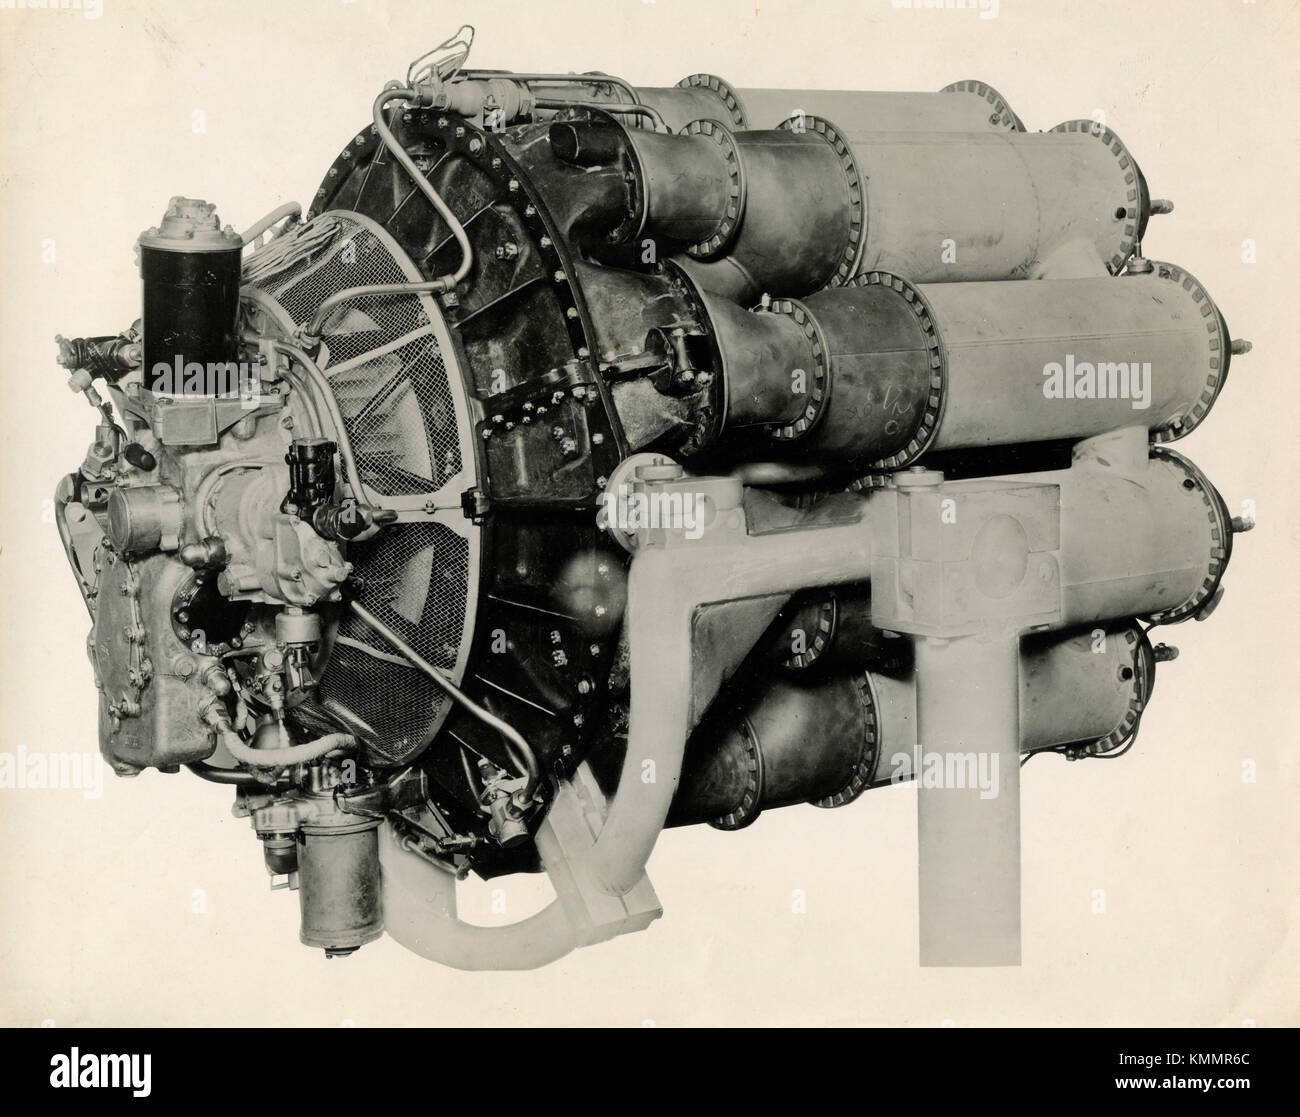 Rolls-Royce aviation engine Welland jet propulsion, UK 1945 - Stock Image